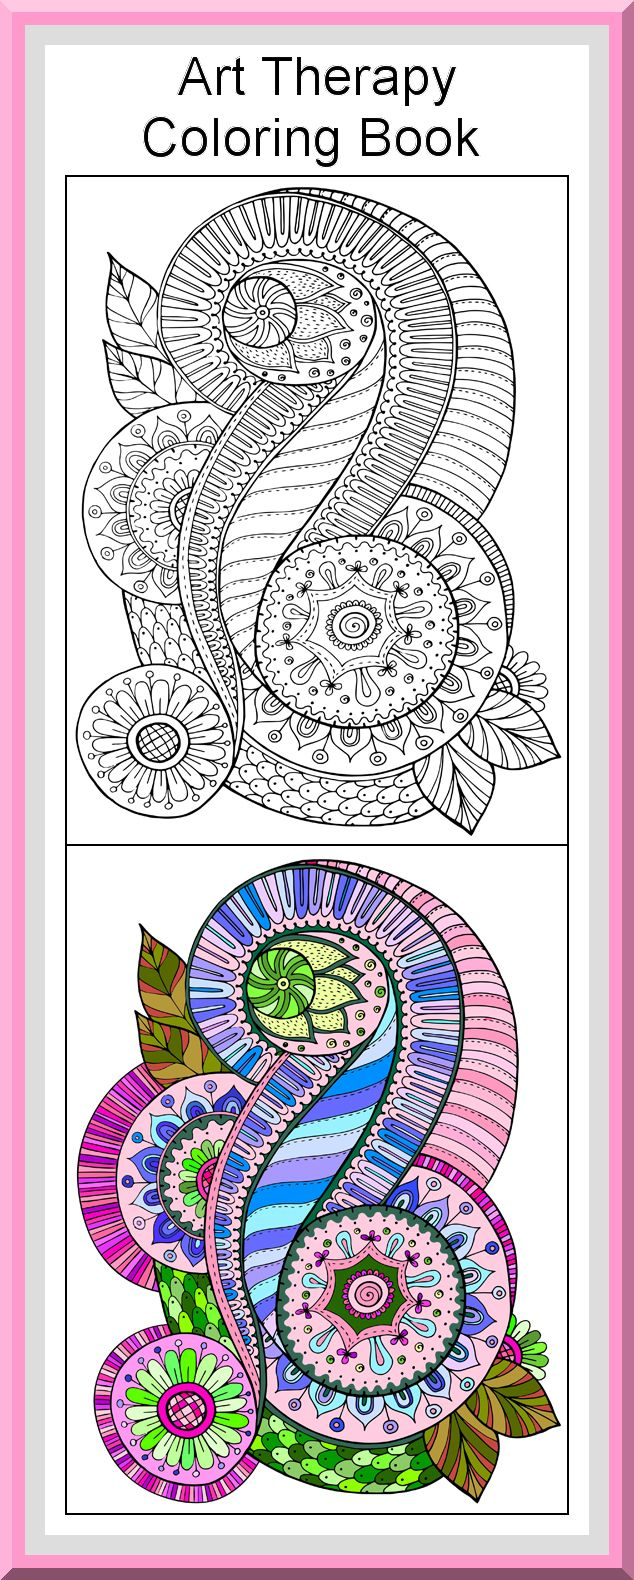 Zen colouring advanced art therapy collector edition - Printable Art Therapy Coloring Pages 30 High Definition Coloring Pages Black Outlines With Colored Examples